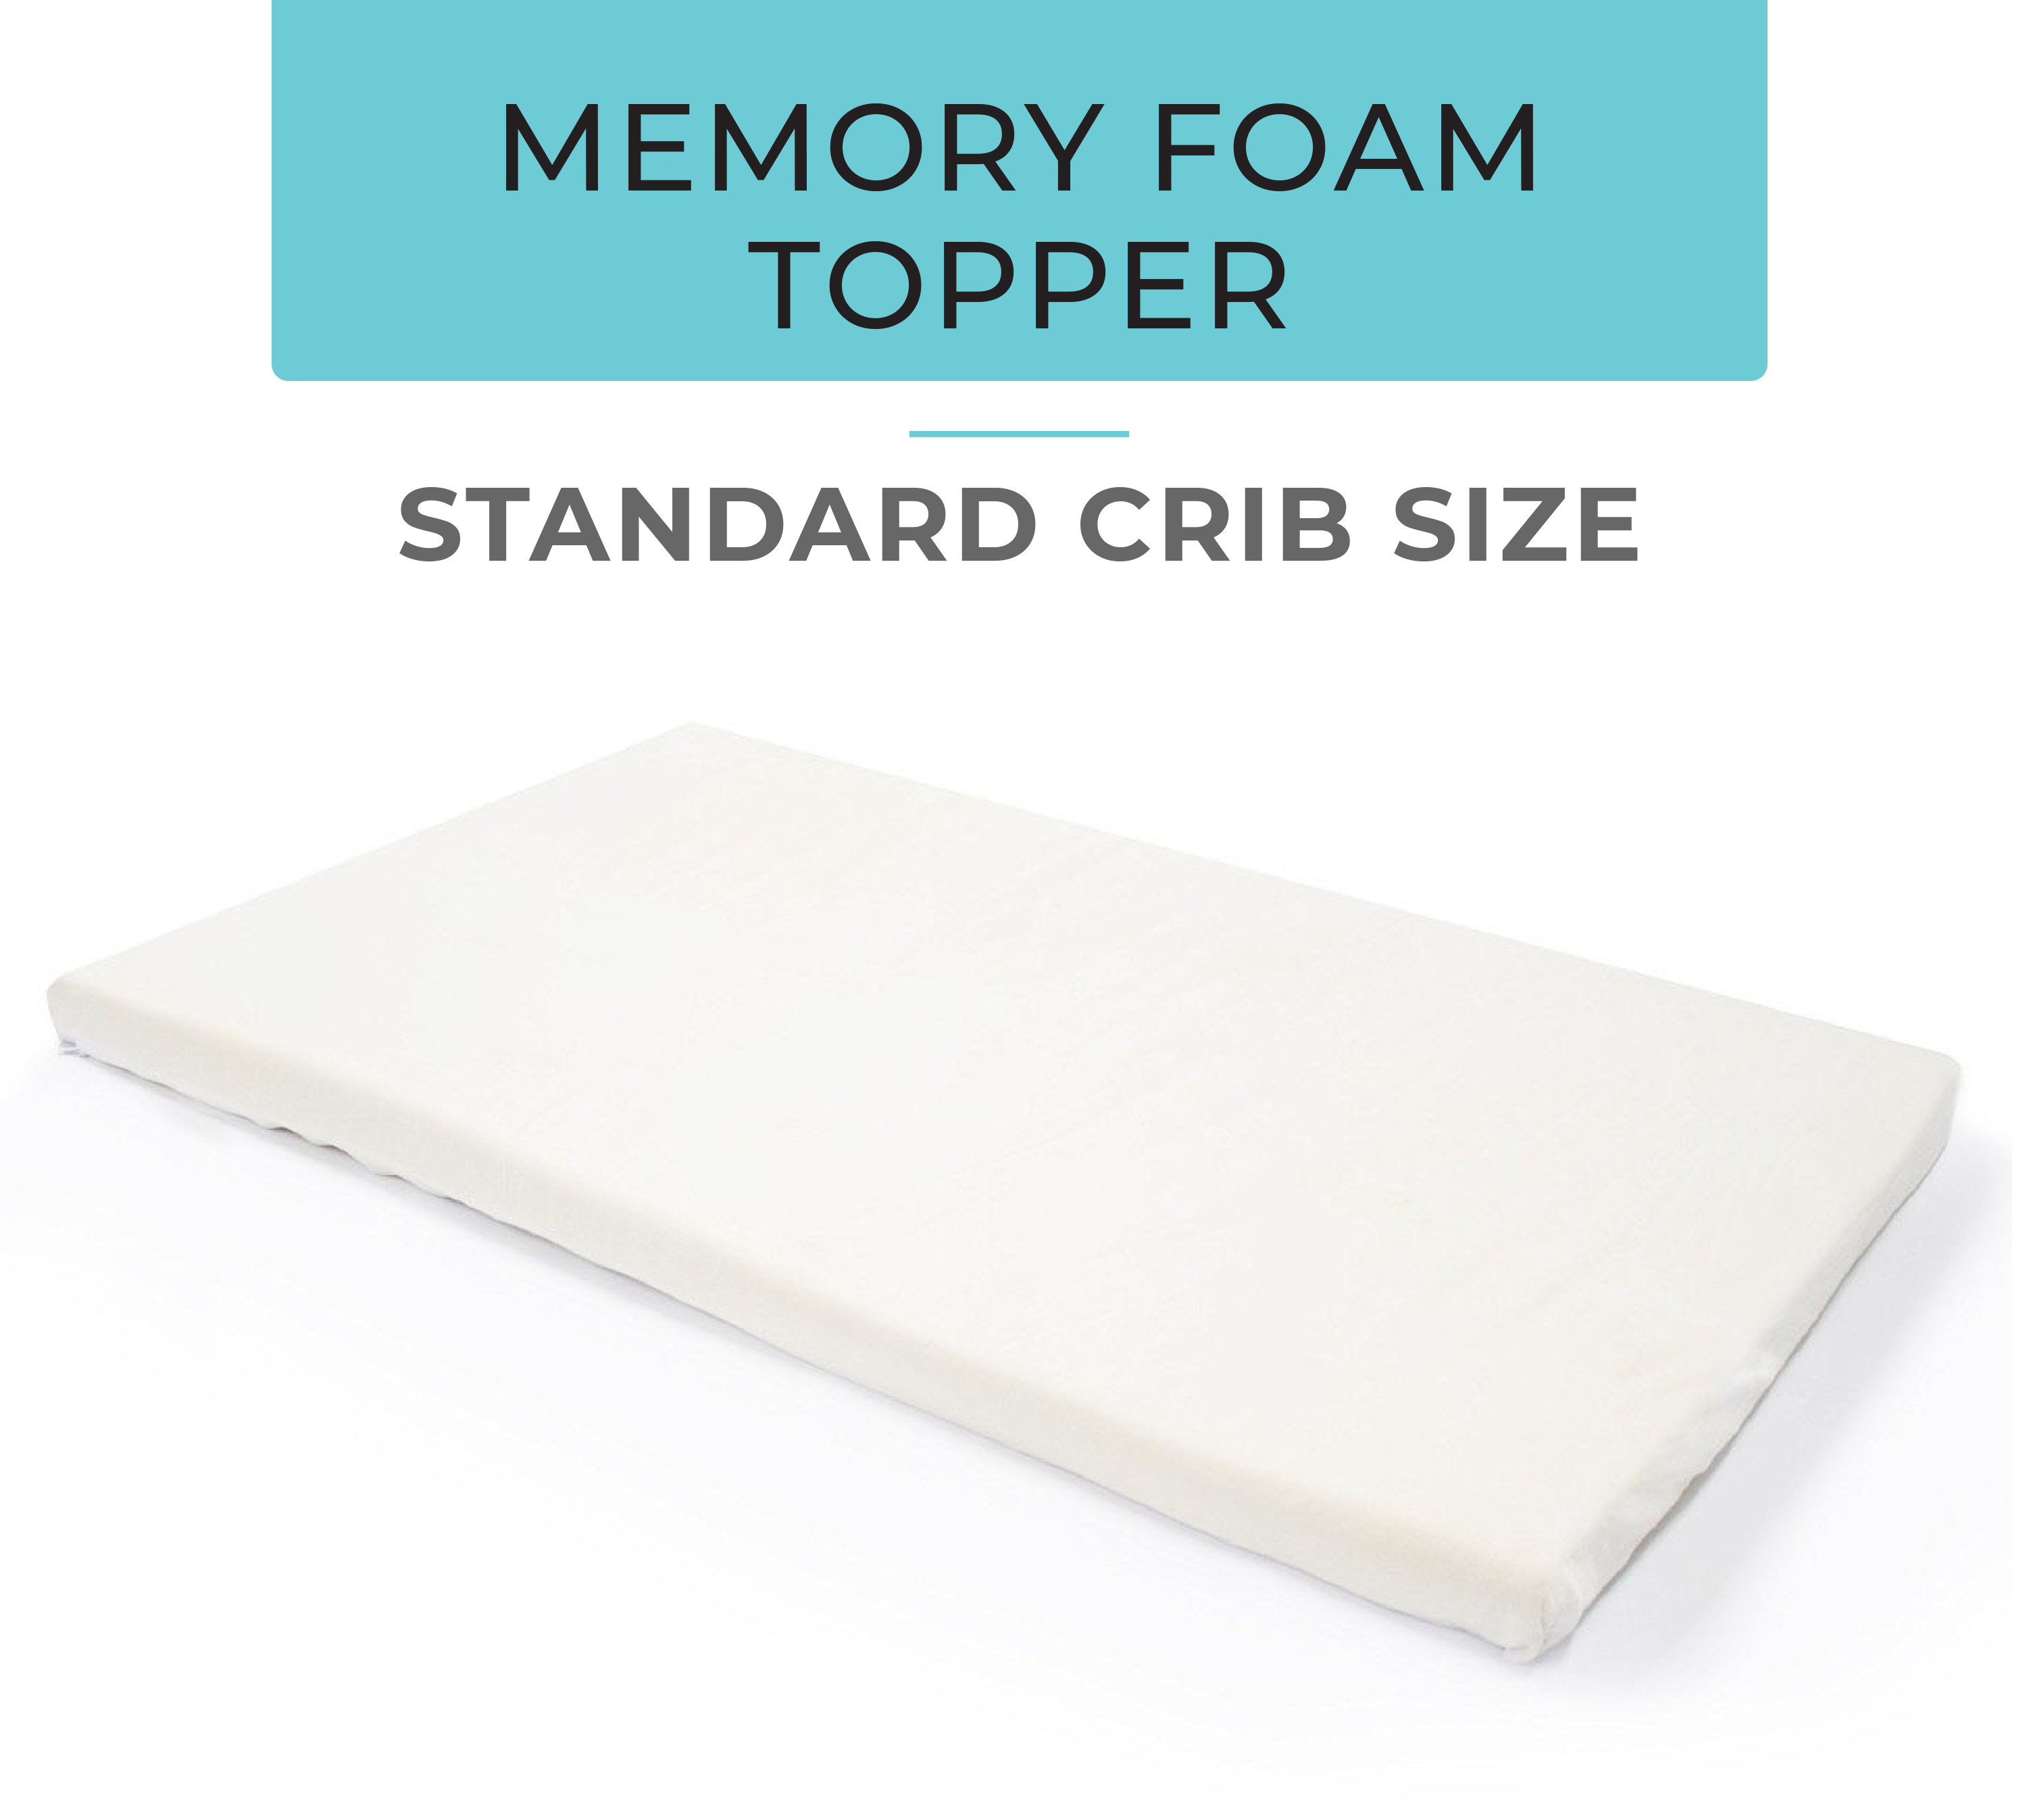 Standard Crib Memory Foam Topper Milliard Bedding The